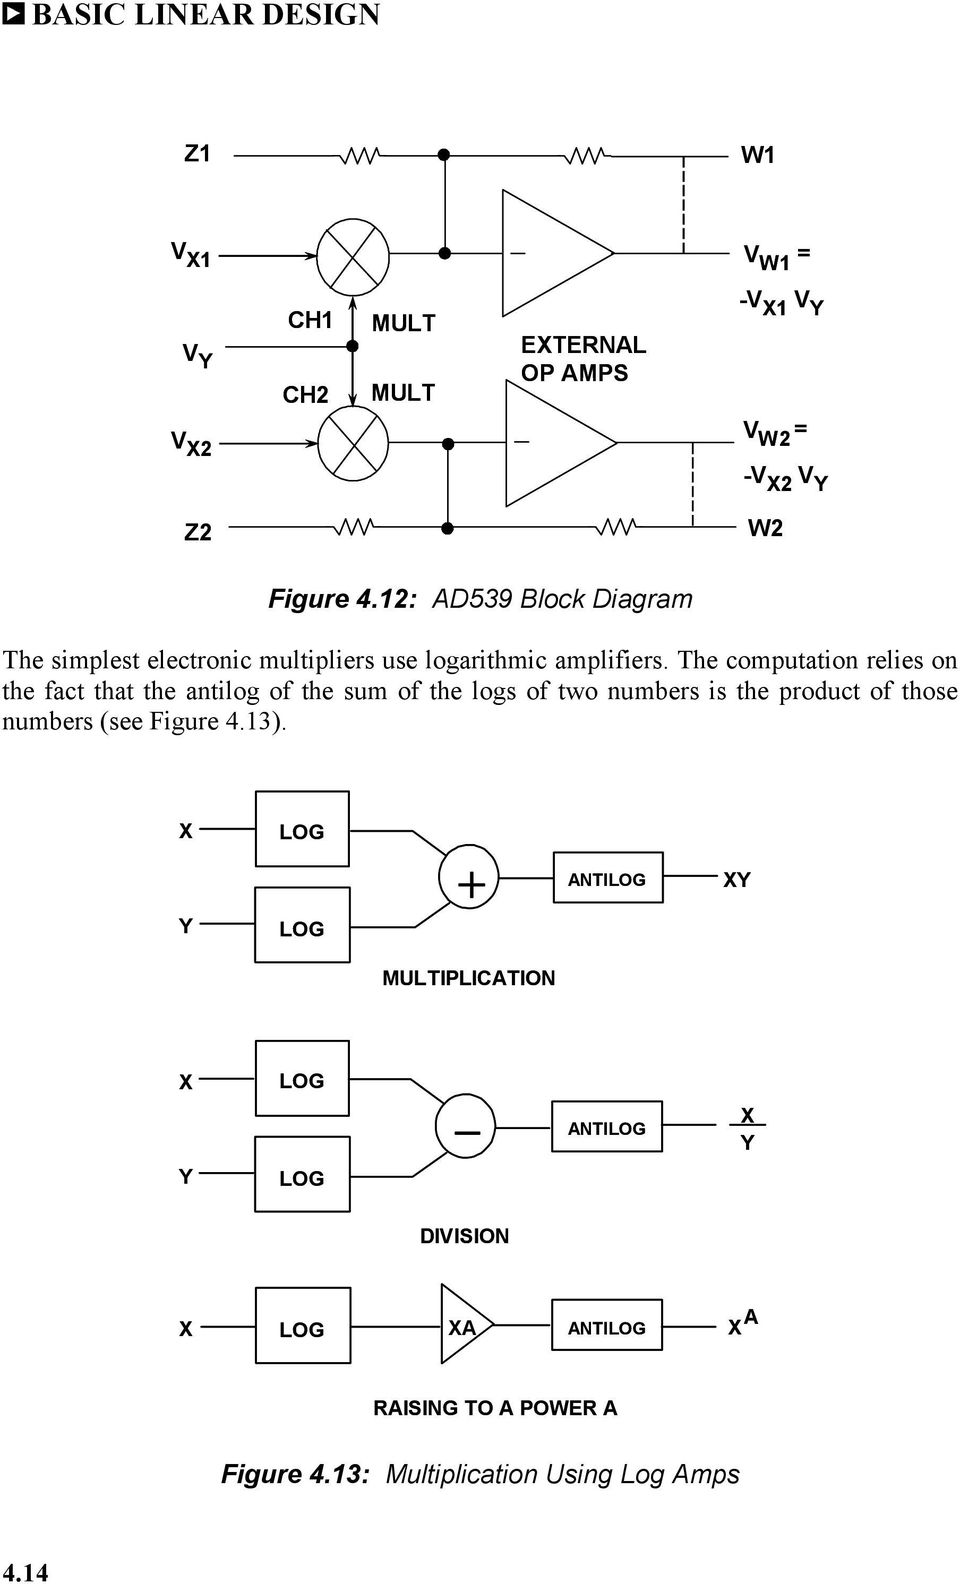 Chapter 4 Rf If Circuits Pdf Figure Block Diagram Of Detector And Amplifier The Computation Relies On Fact That Antilog Sum Logs